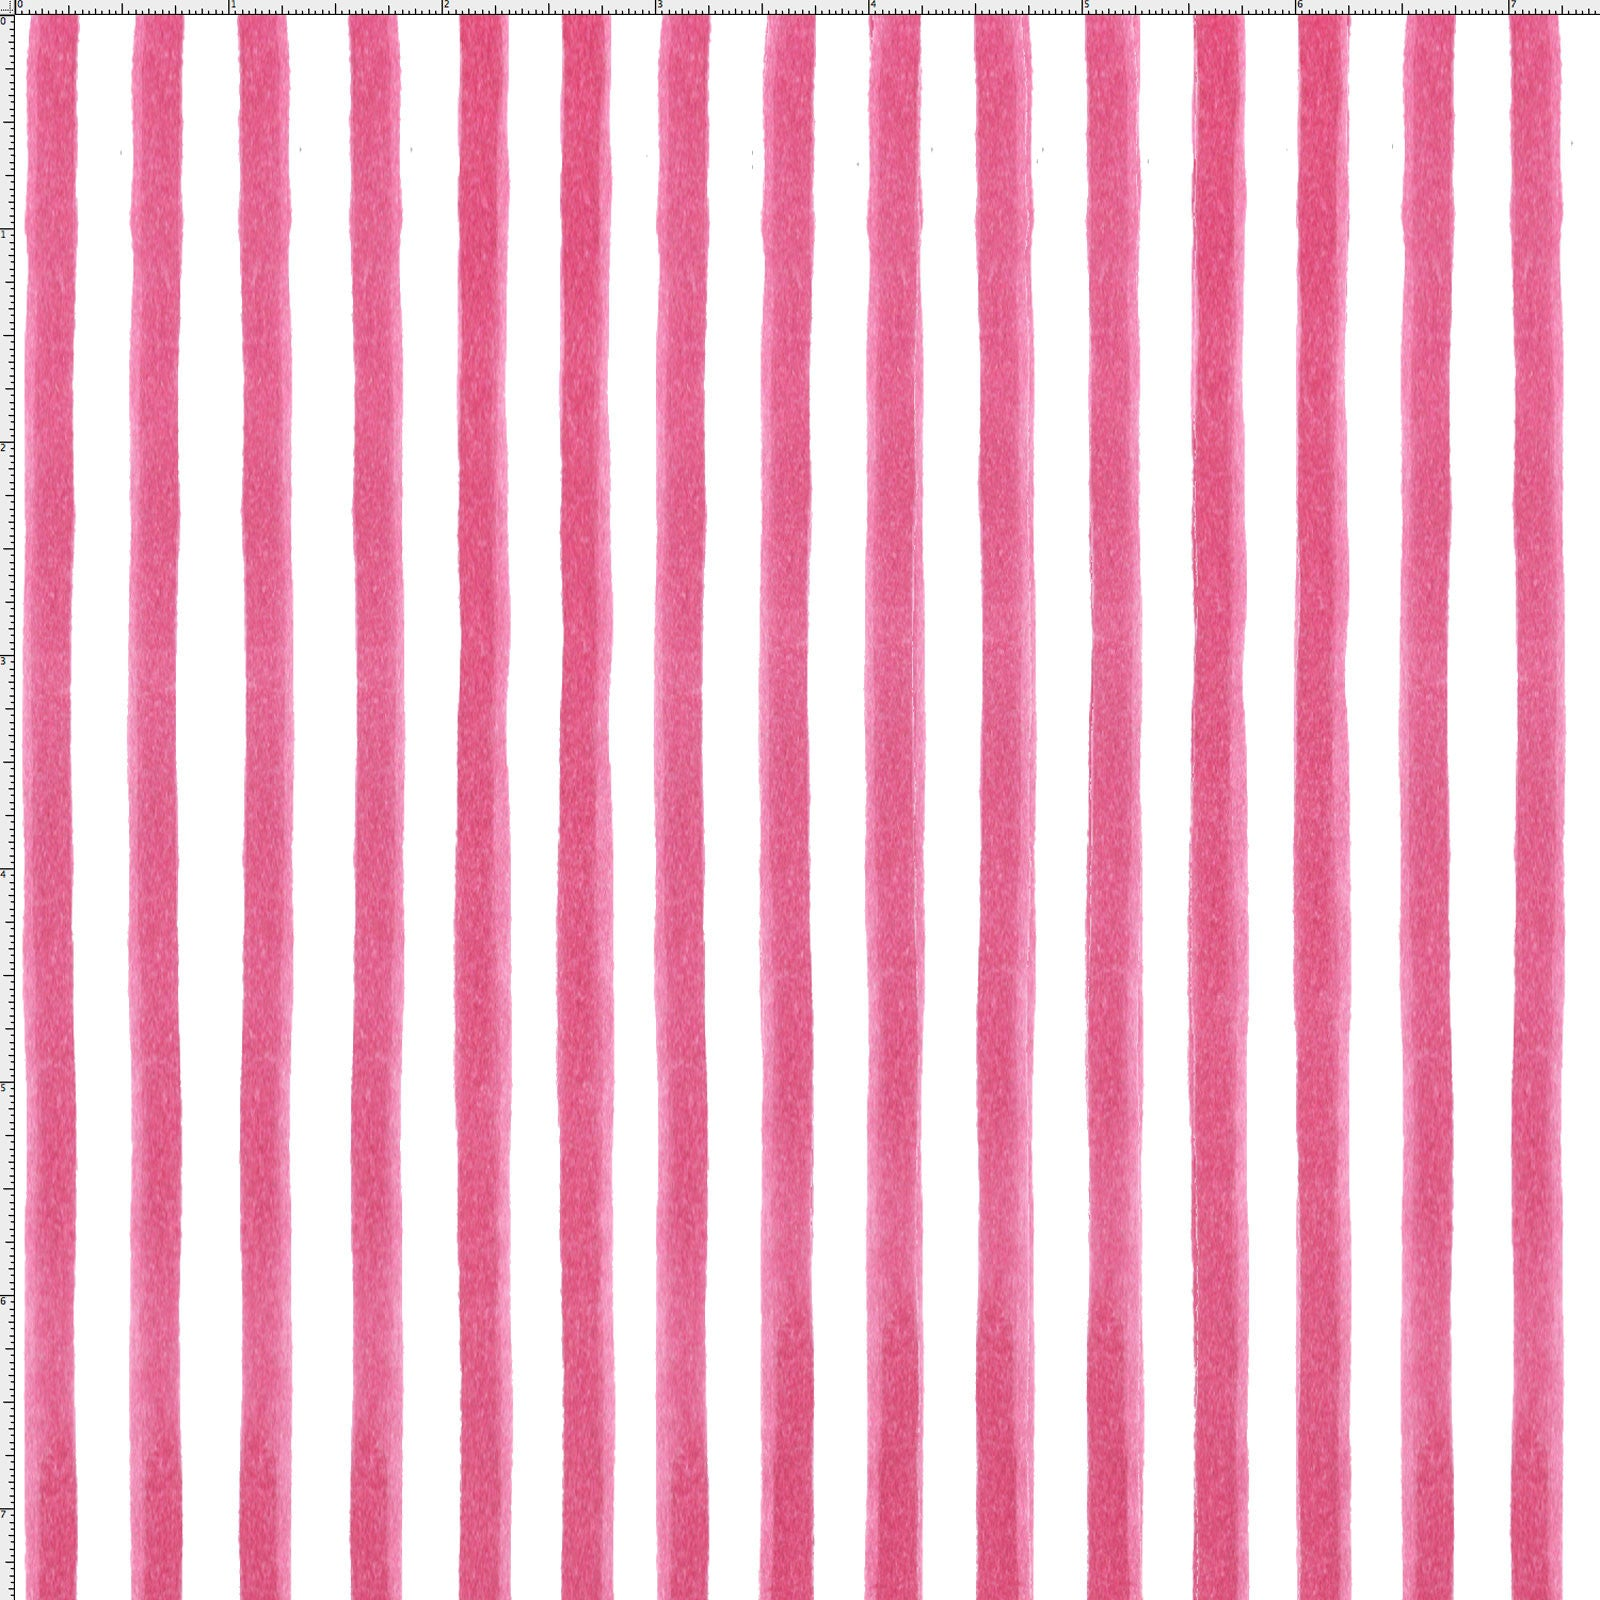 Gulf Stripe Pink Fabric Yard